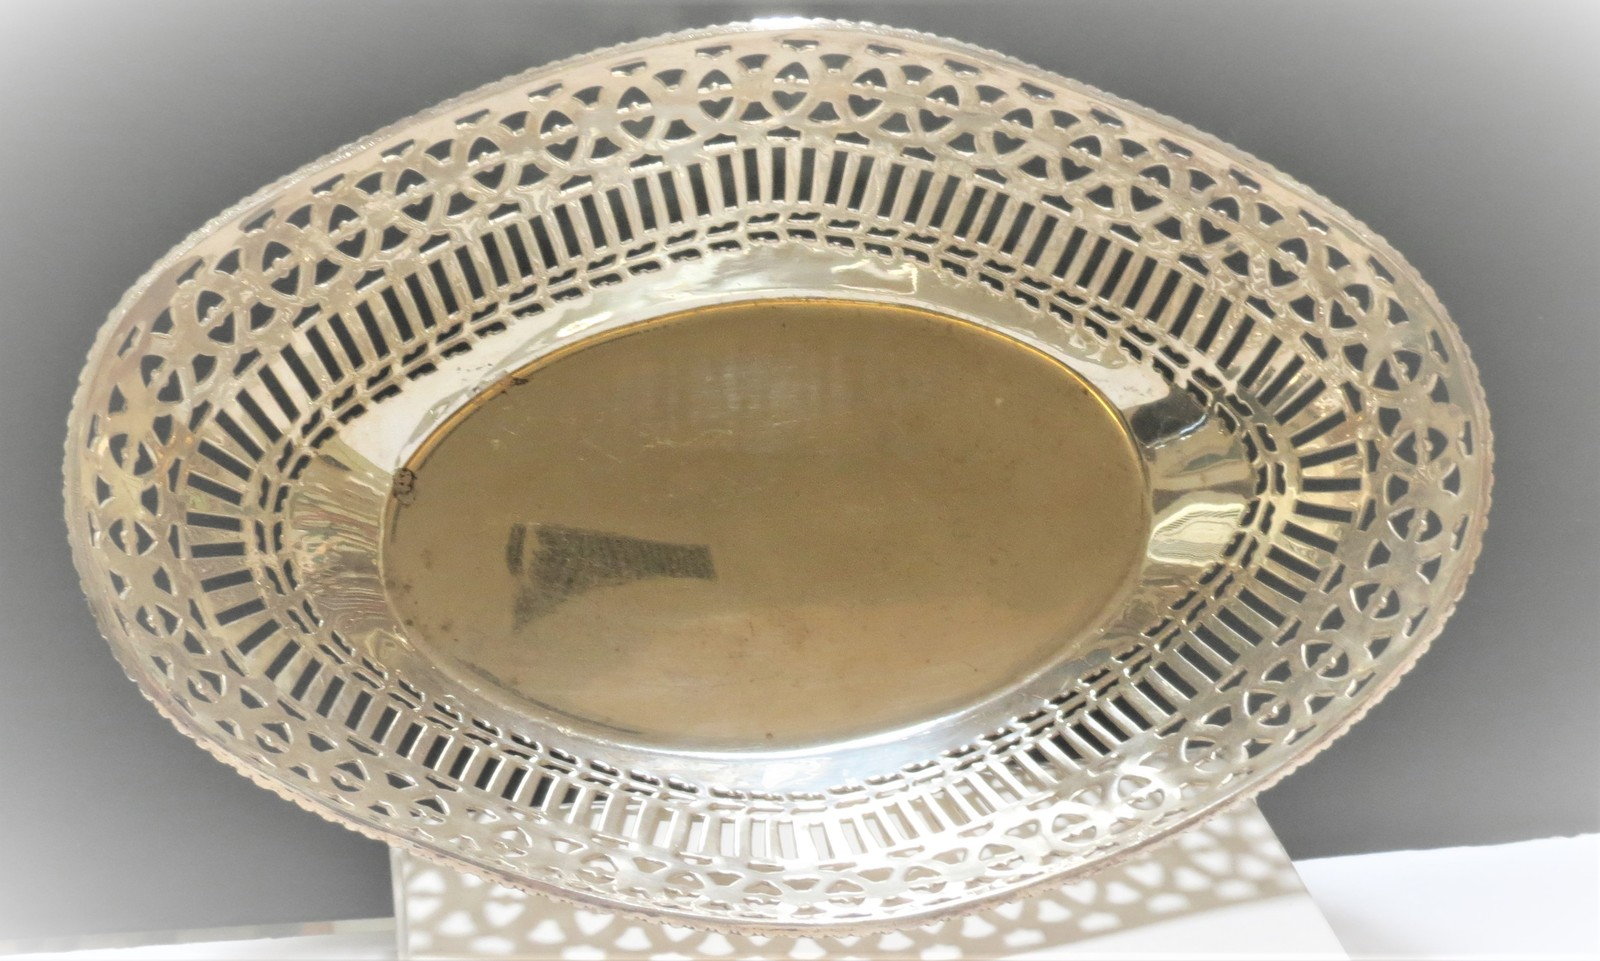 Primary image for Silver decorative serving bowl. Perfect for buns, biskets or bread. Plated unmar